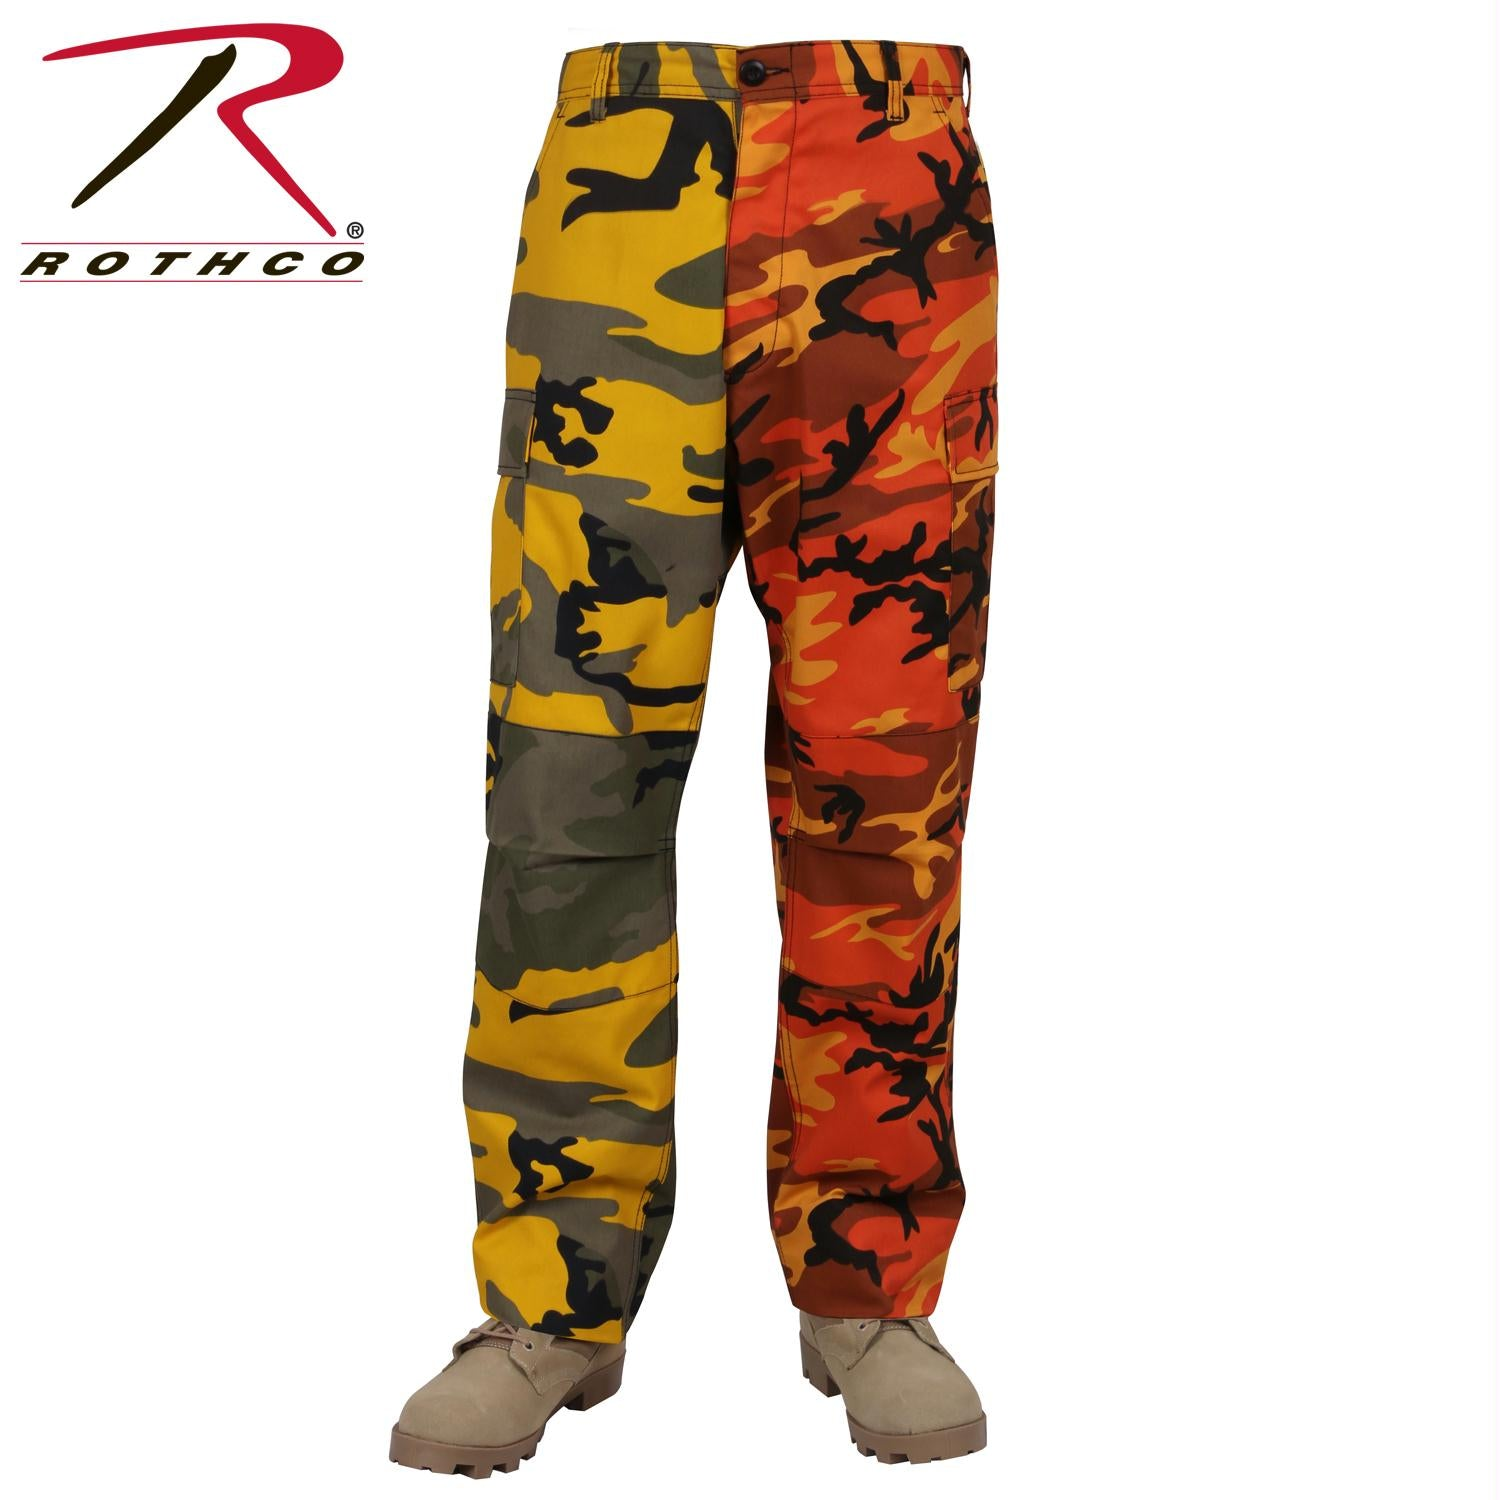 Rothco Two-Tone Camo BDU Pants - Stinger Yellow / Savage Orange Camo / XL